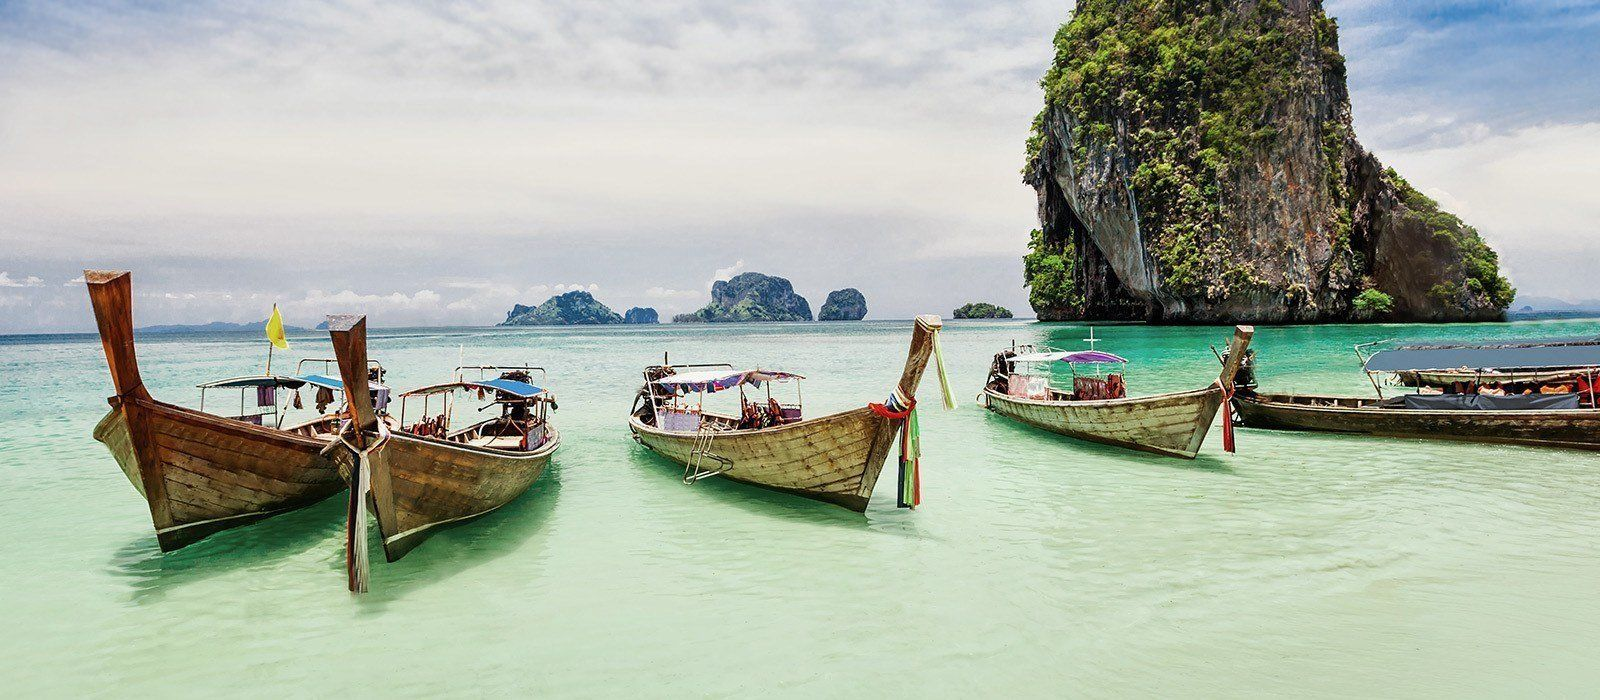 Destination Phuket Thailand